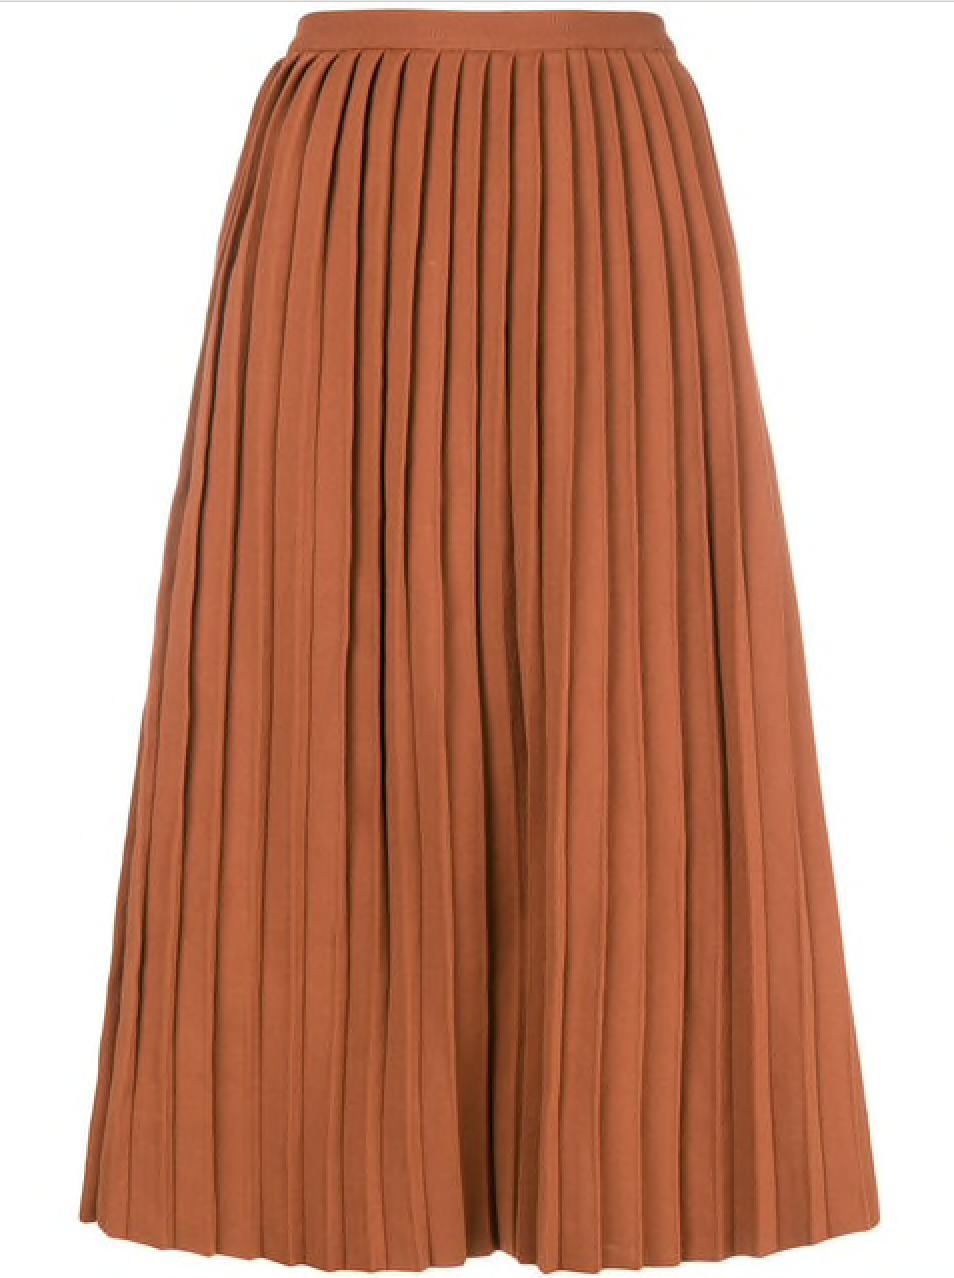 FASHION SKIRT COLOUR